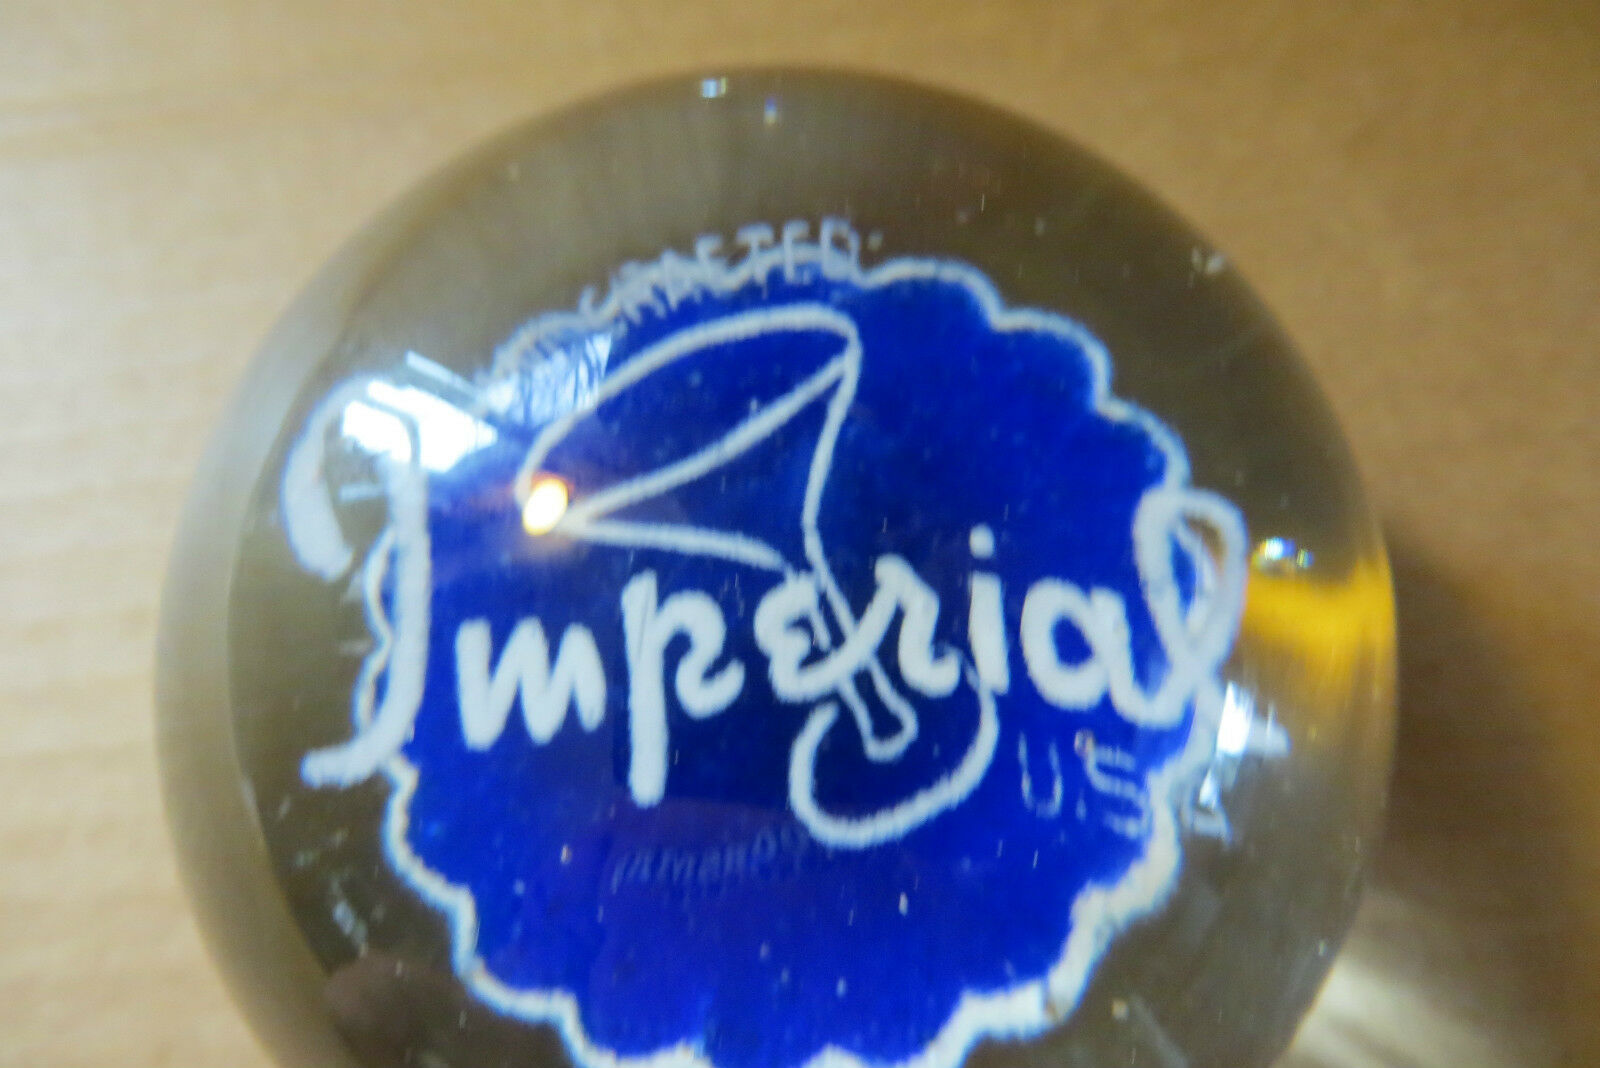 antique Hand Crafted Imperial glass company scarce mint advertising paperweight